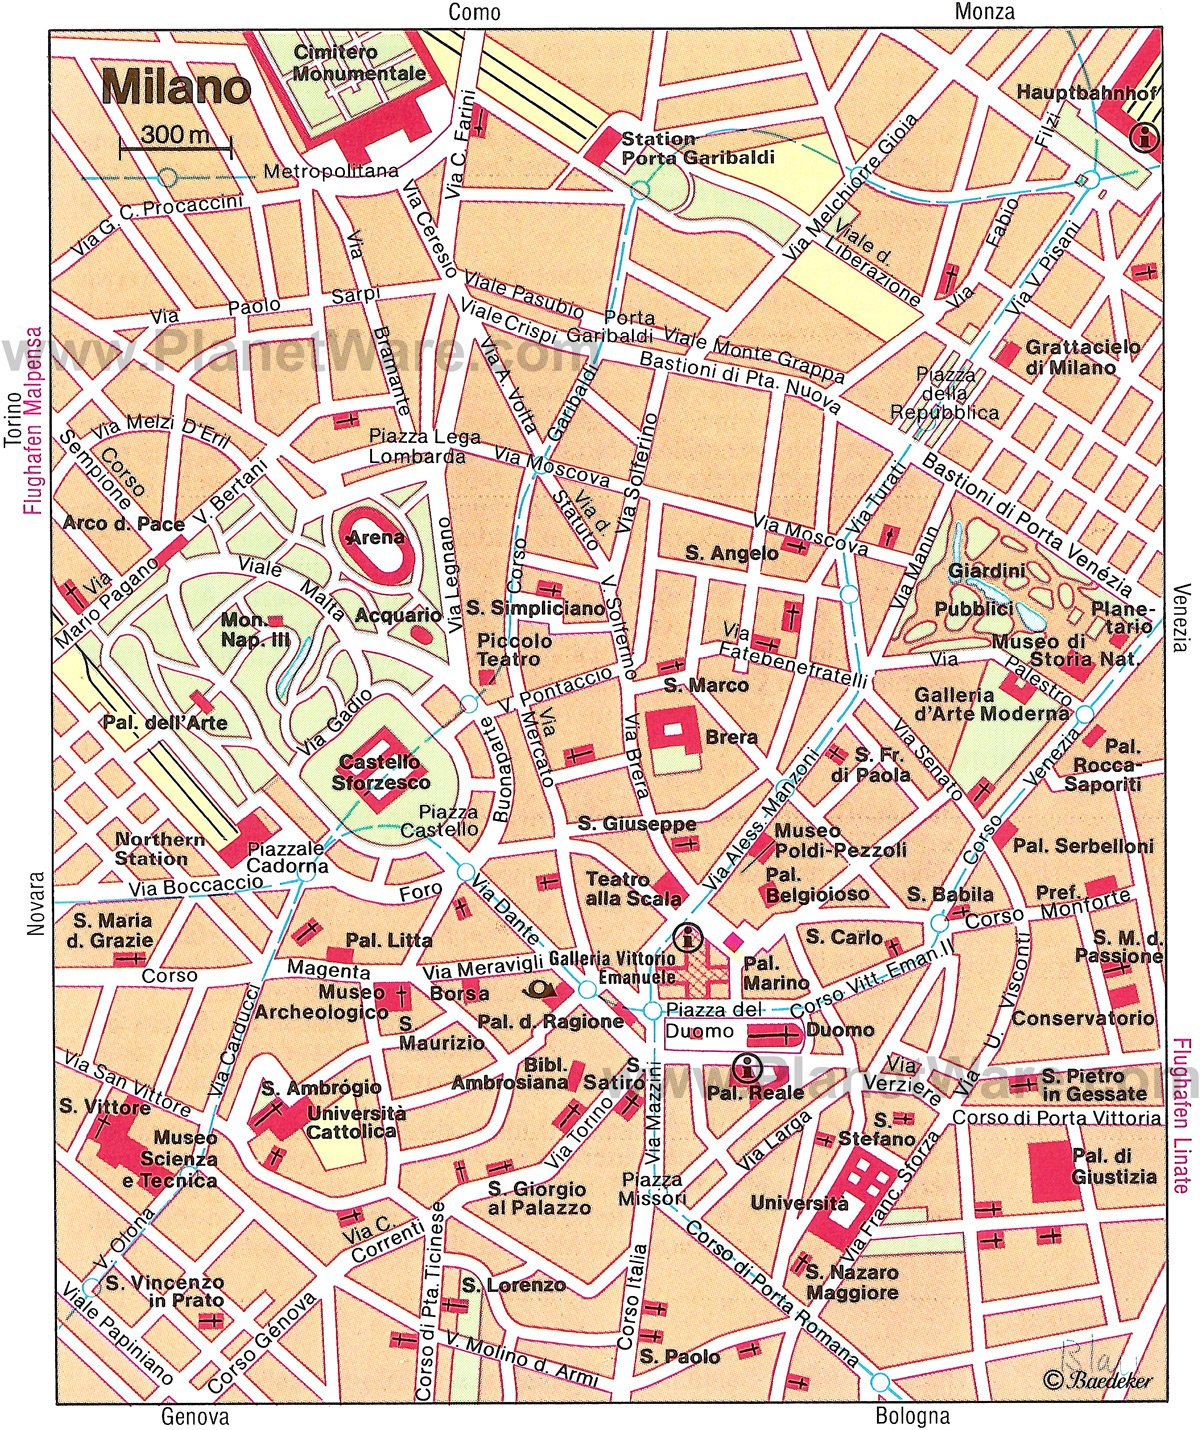 14 Top Tourist Attractions in Milan – Map Of Rome Tourist Attractions